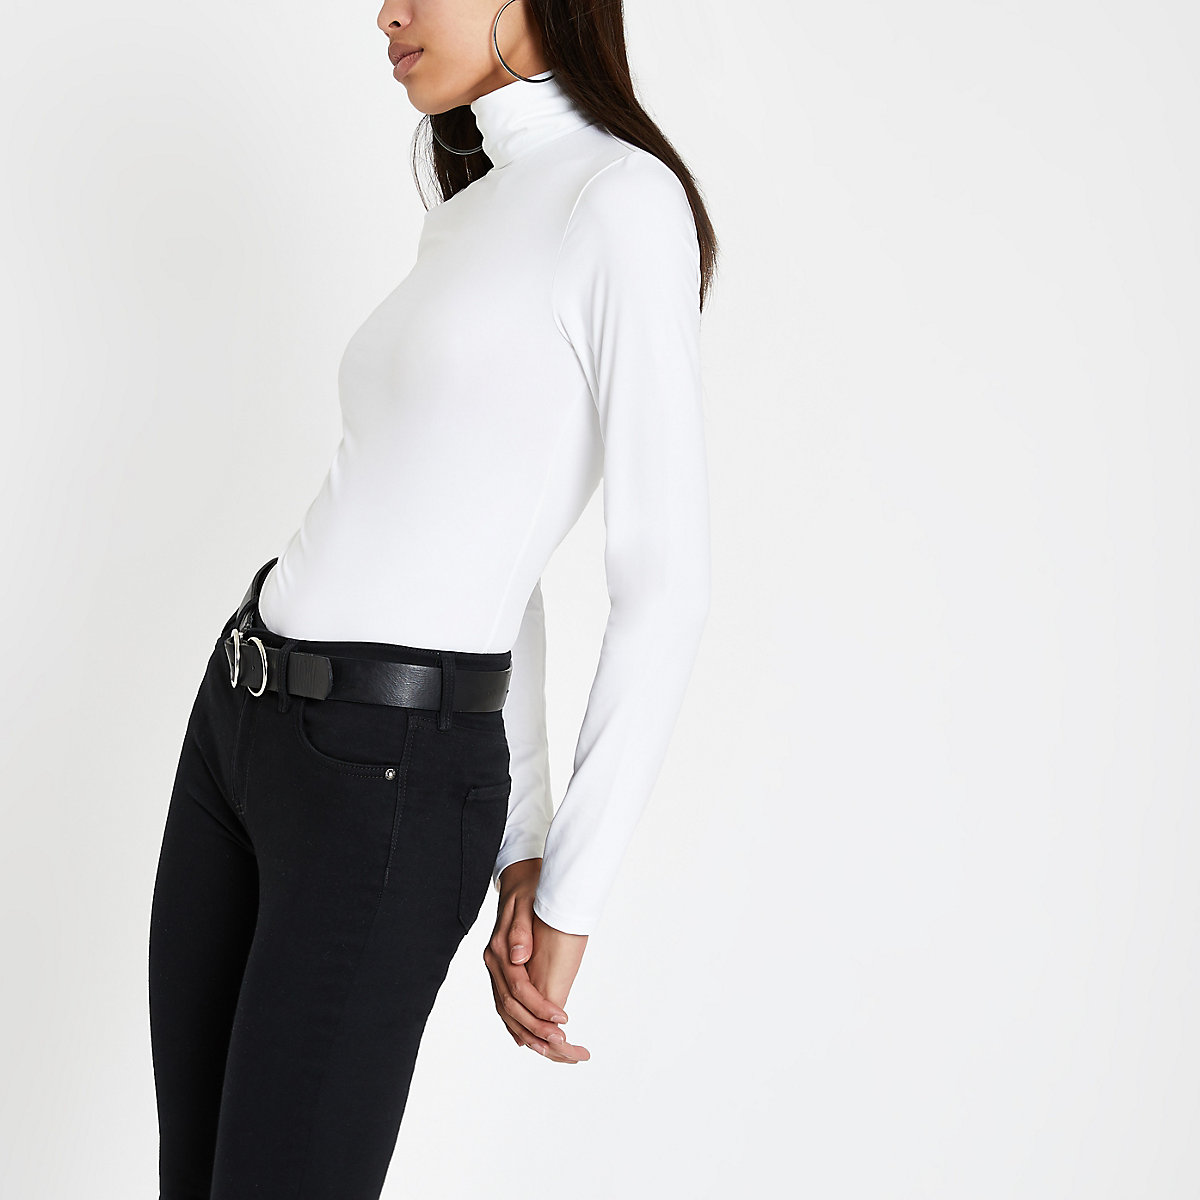 White slinky roll neck top